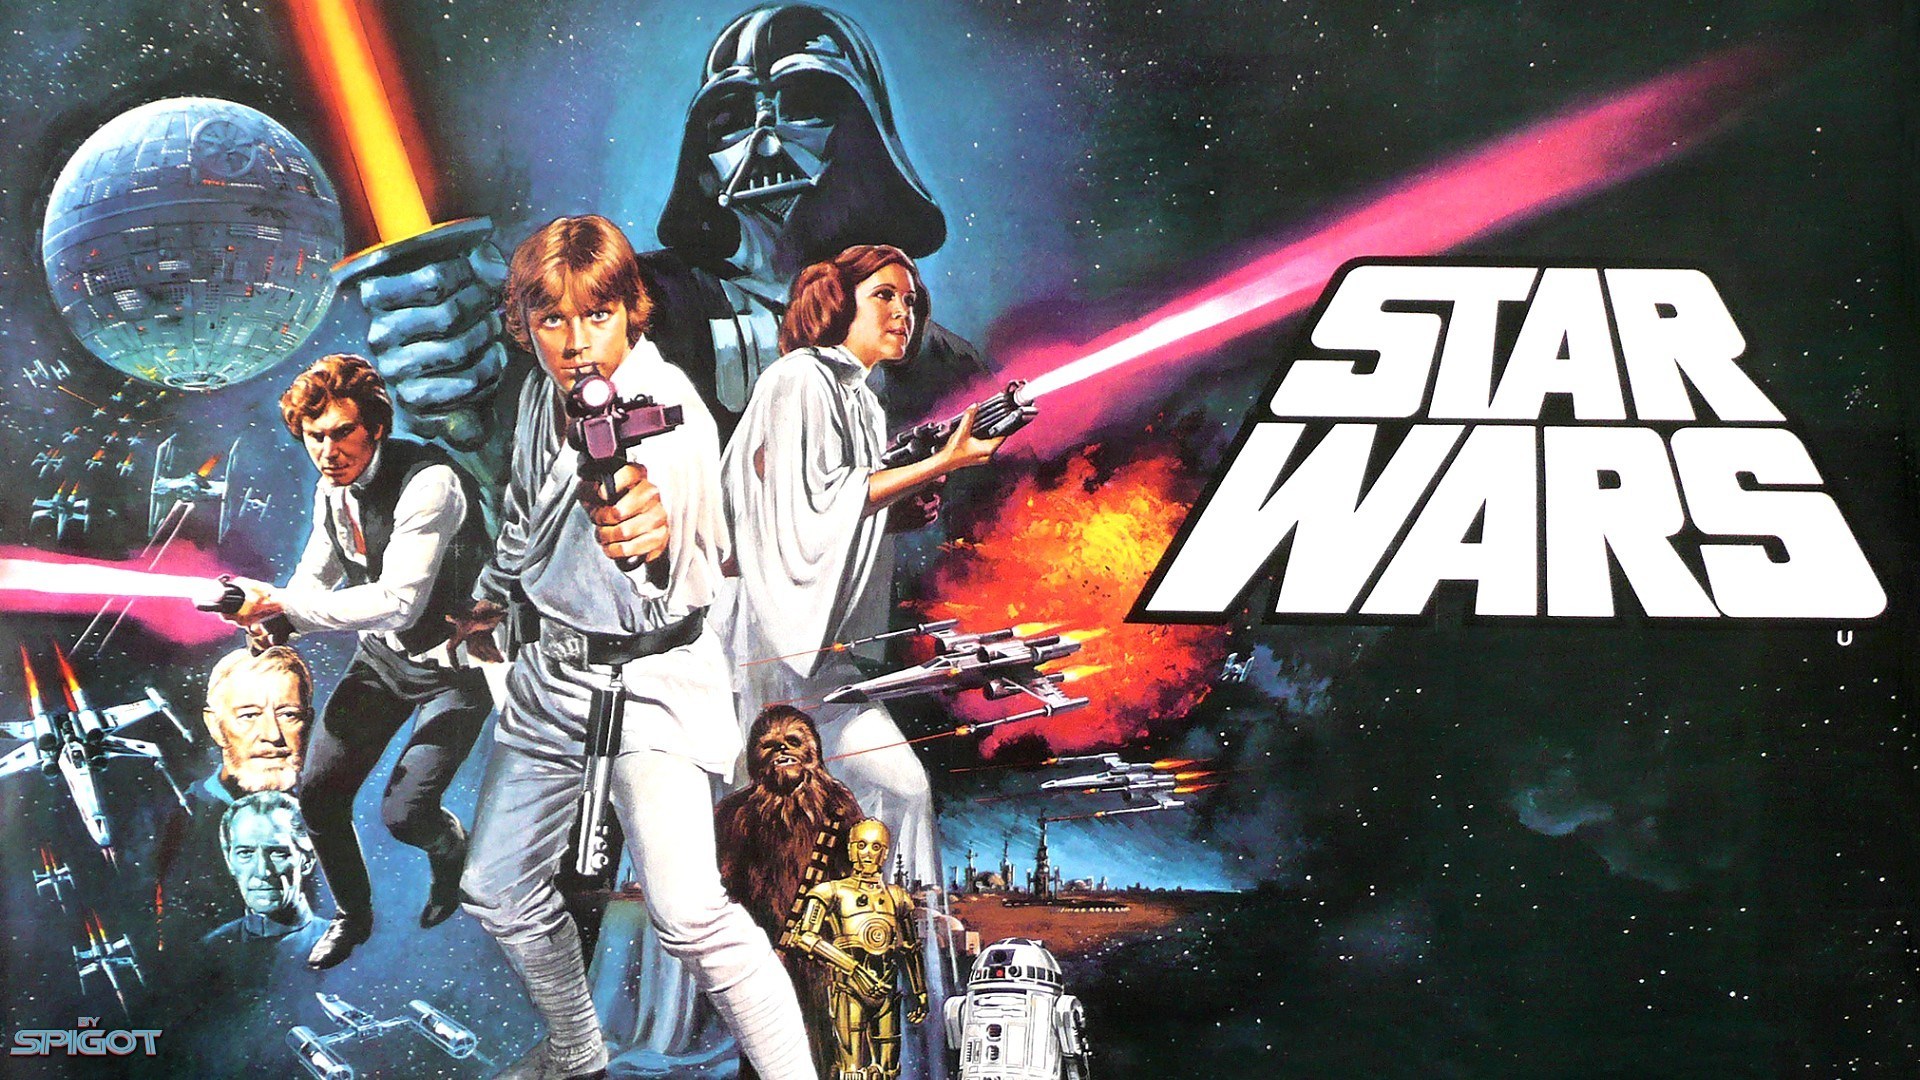 star wars movie poster wallpaper - wallpapersafari